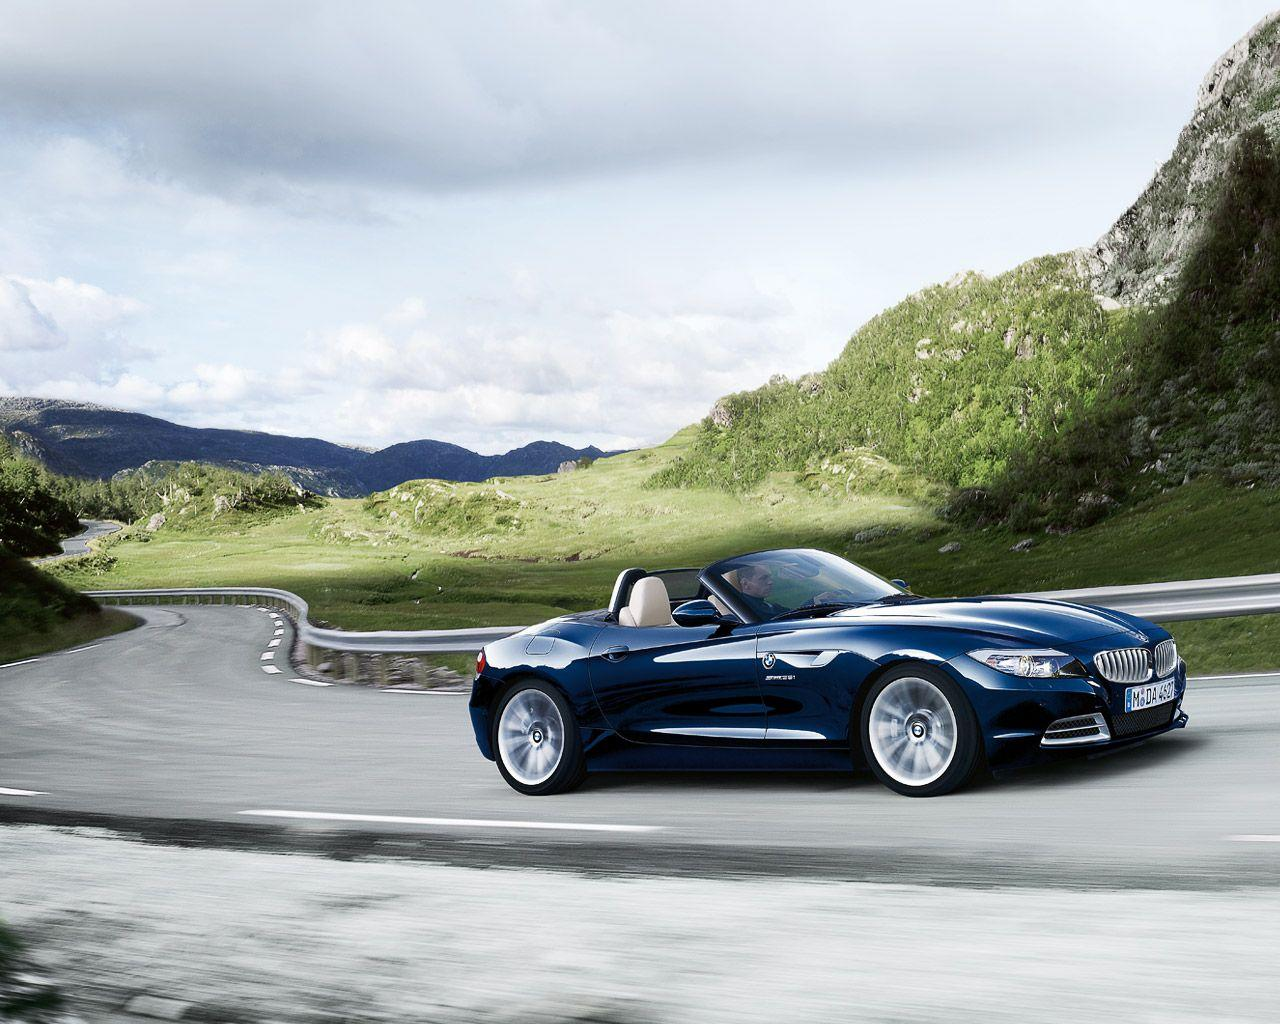 Free Download Bmw Z4 Wallpapers 1280x1024 For Your Desktop